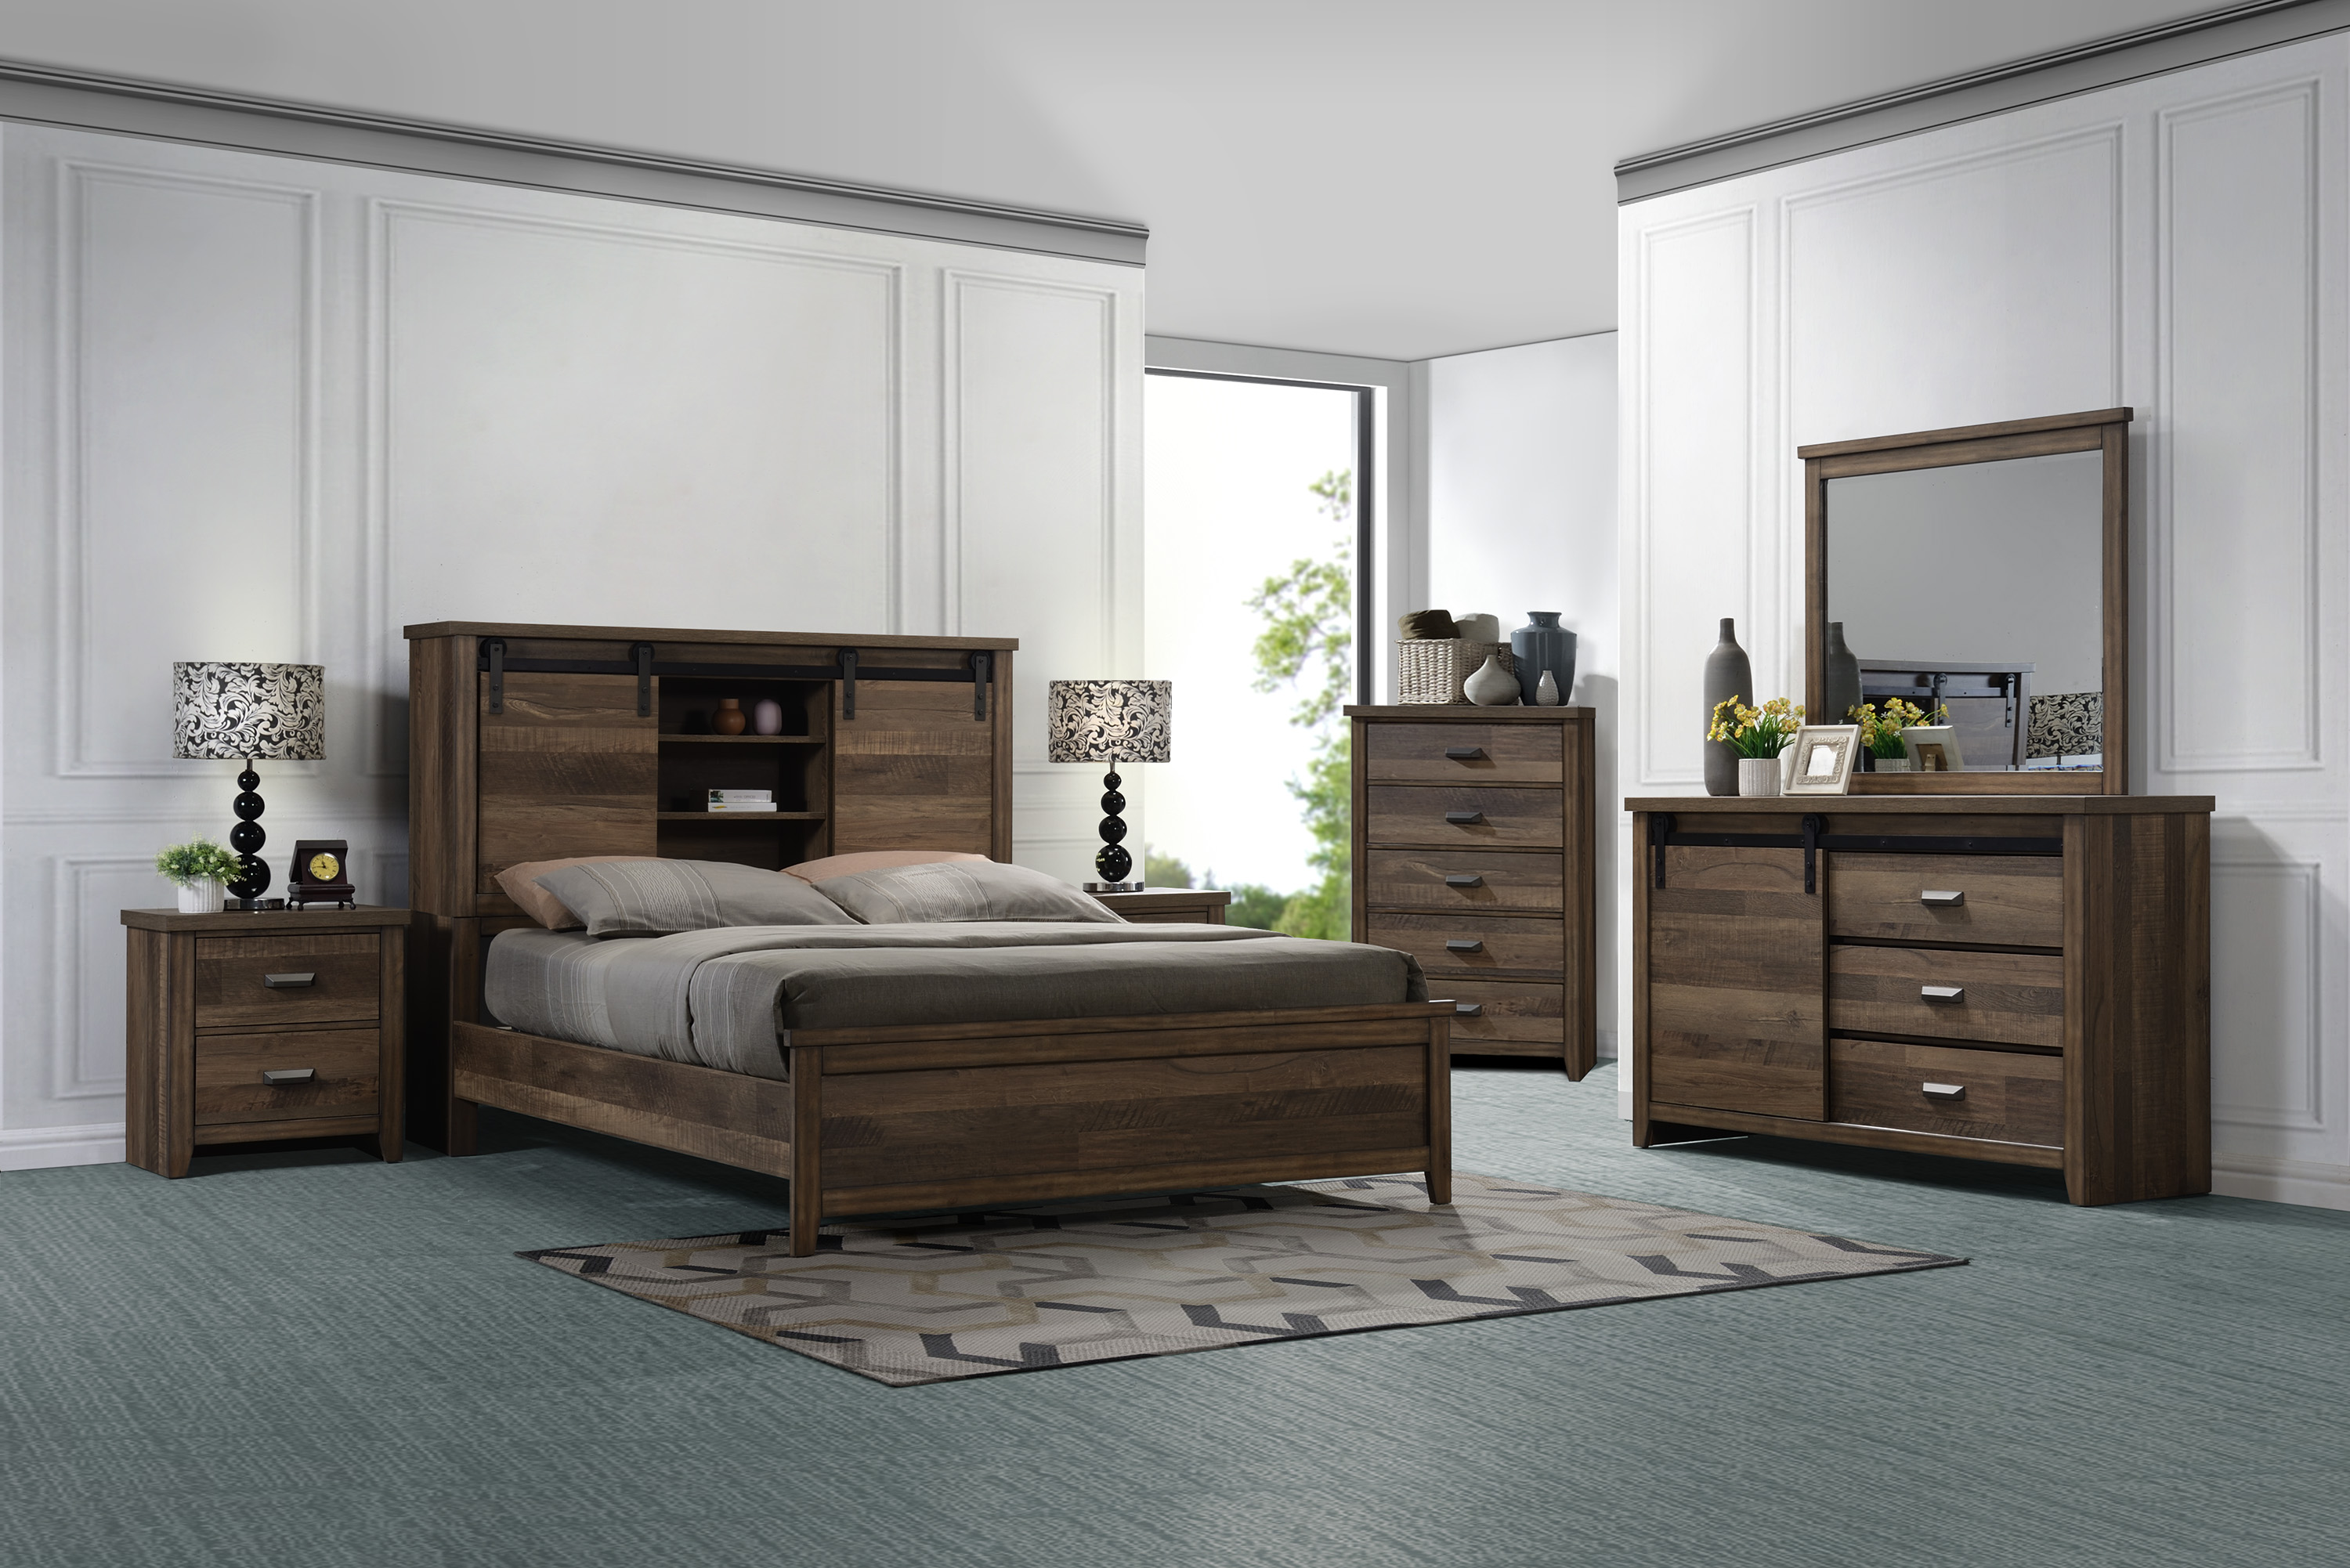 Calhoun King Bedroom Group by Crown Mark at Northeast Factory Direct